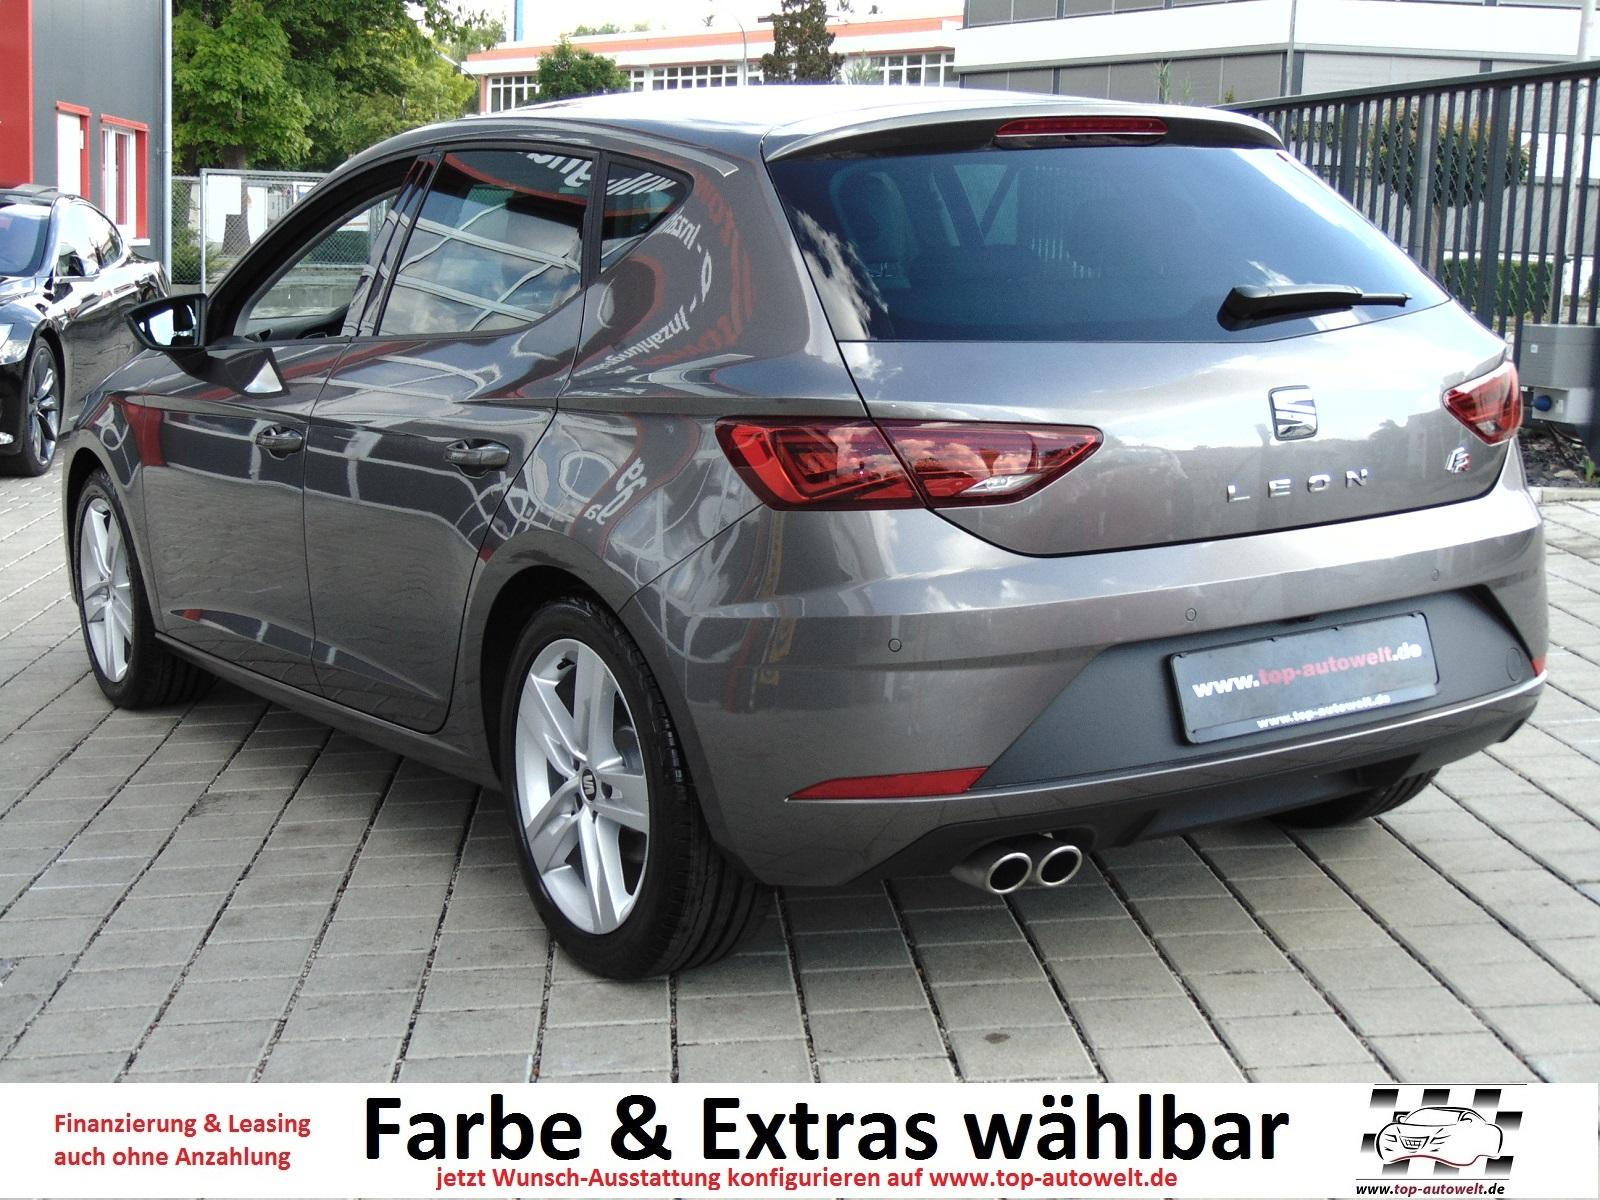 seat leon fr euro6 wltp 1 5 tsi 130 ps klimaautom. Black Bedroom Furniture Sets. Home Design Ideas